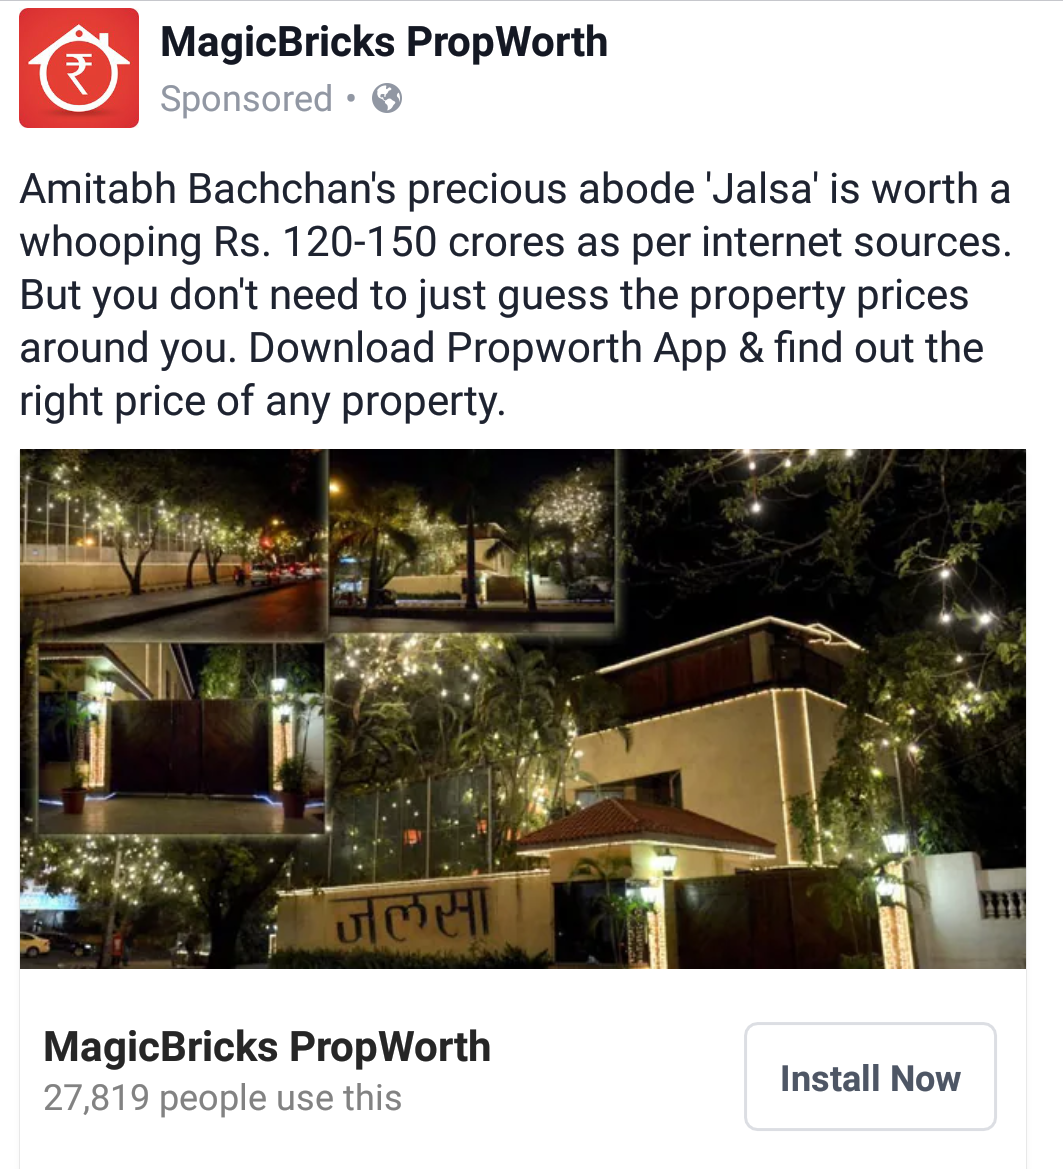 MagicBricks Propworth use of Amitabh Bachchan's Jalsa house in its marketing